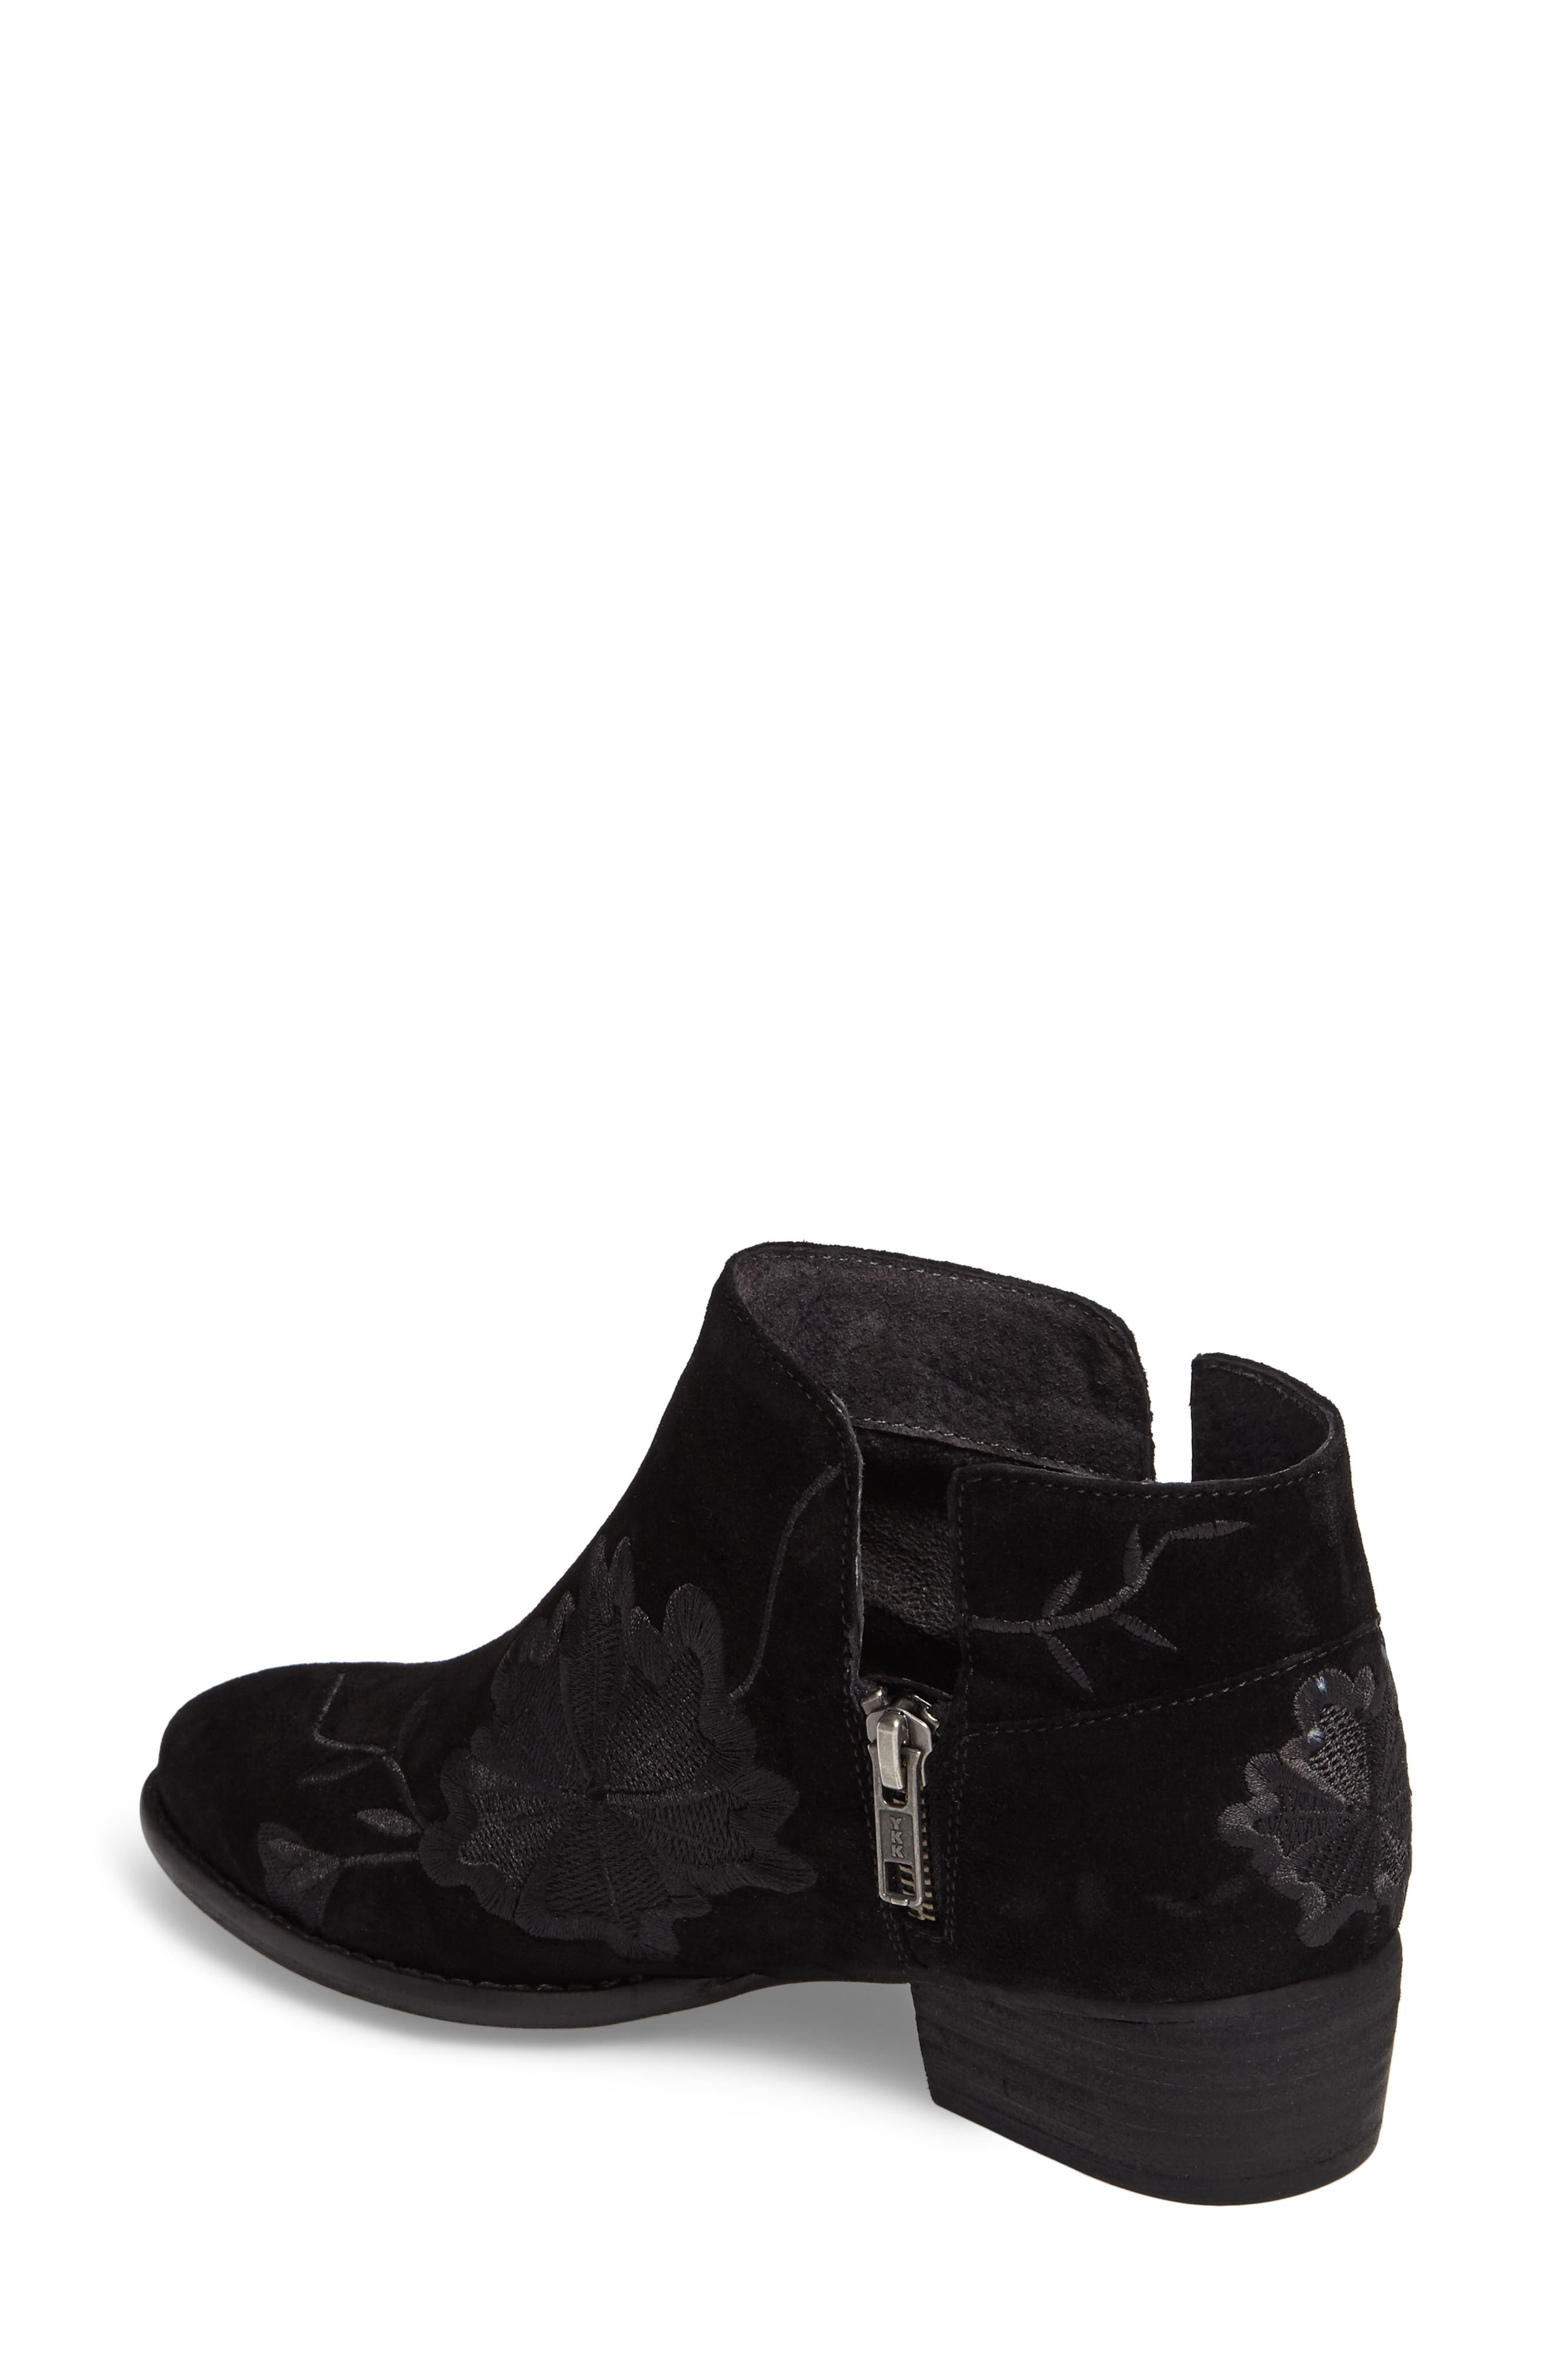 Lantern Embroidered Short Bootie,                             Alternate thumbnail 2, color,                             001